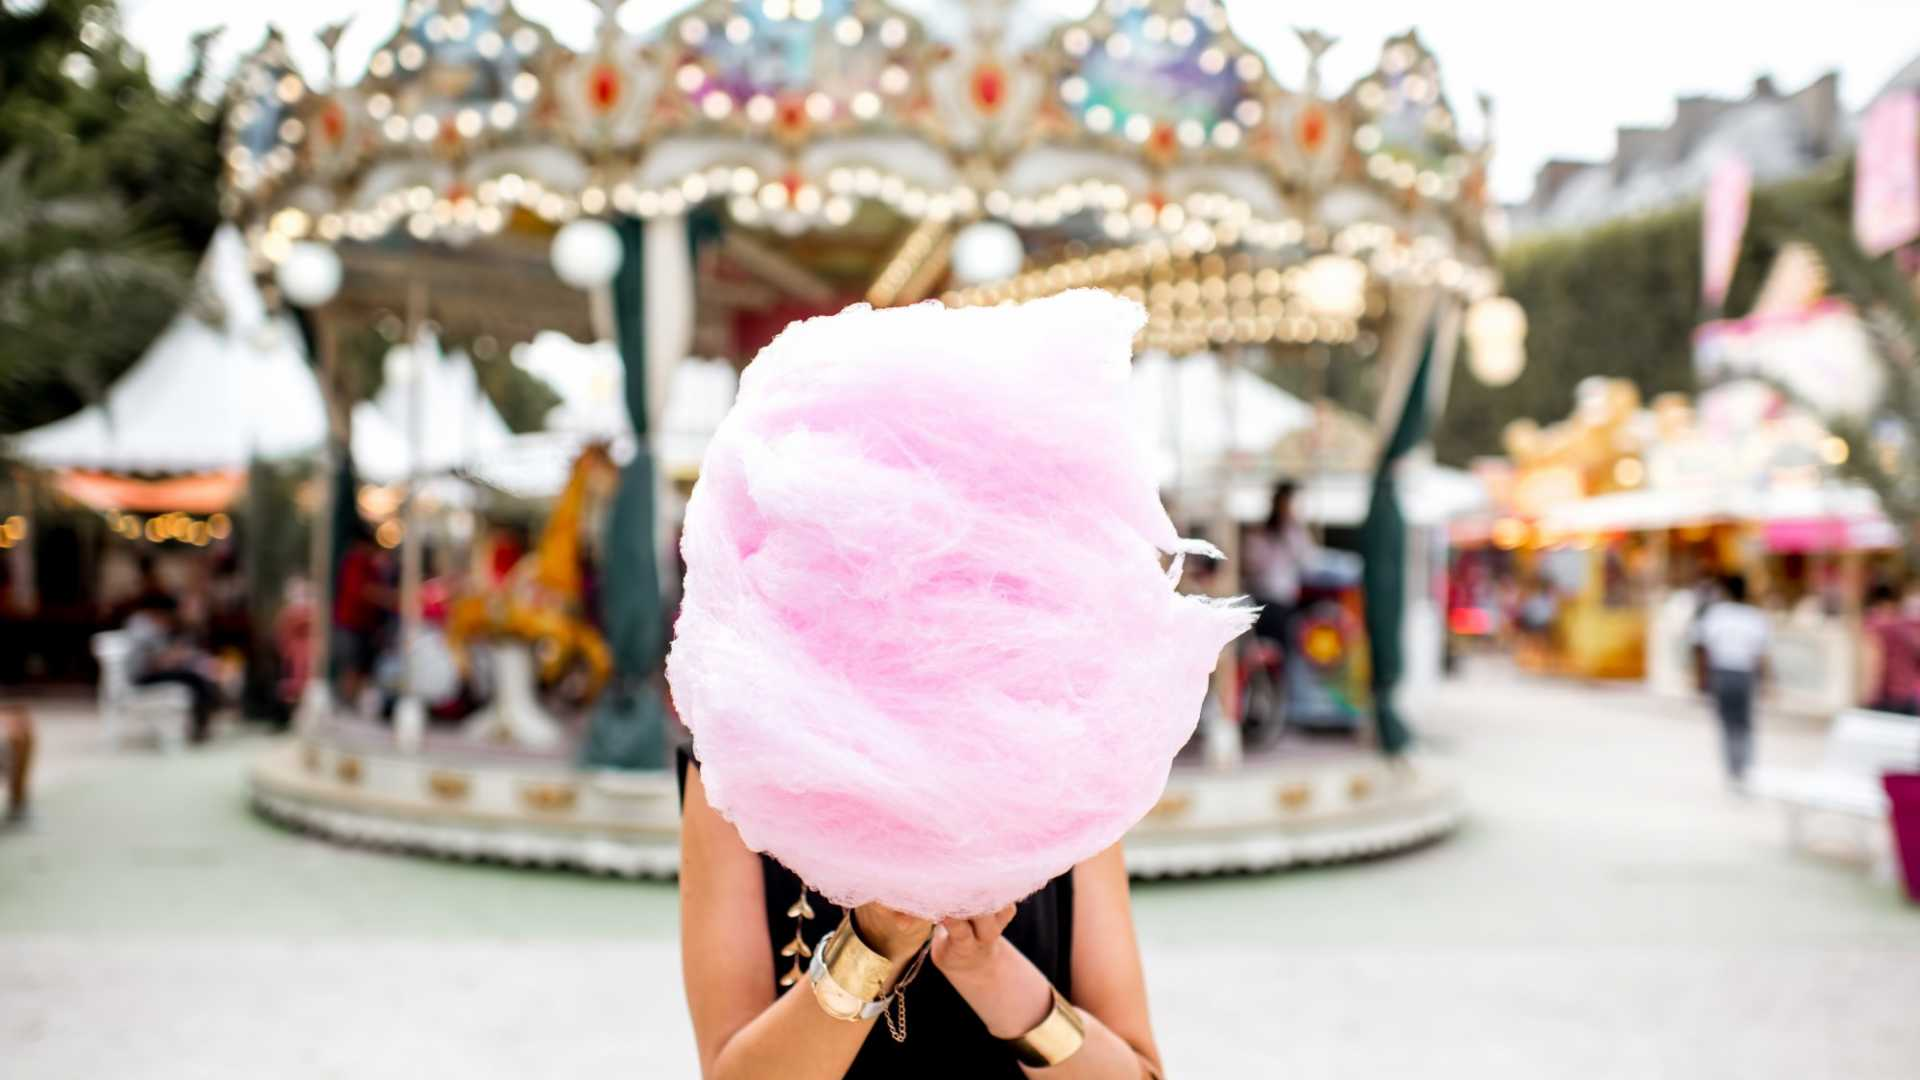 Theme Parks Are Masters at Getting Customers to Buy More. 2 Simple Ways Your Brand Can Too